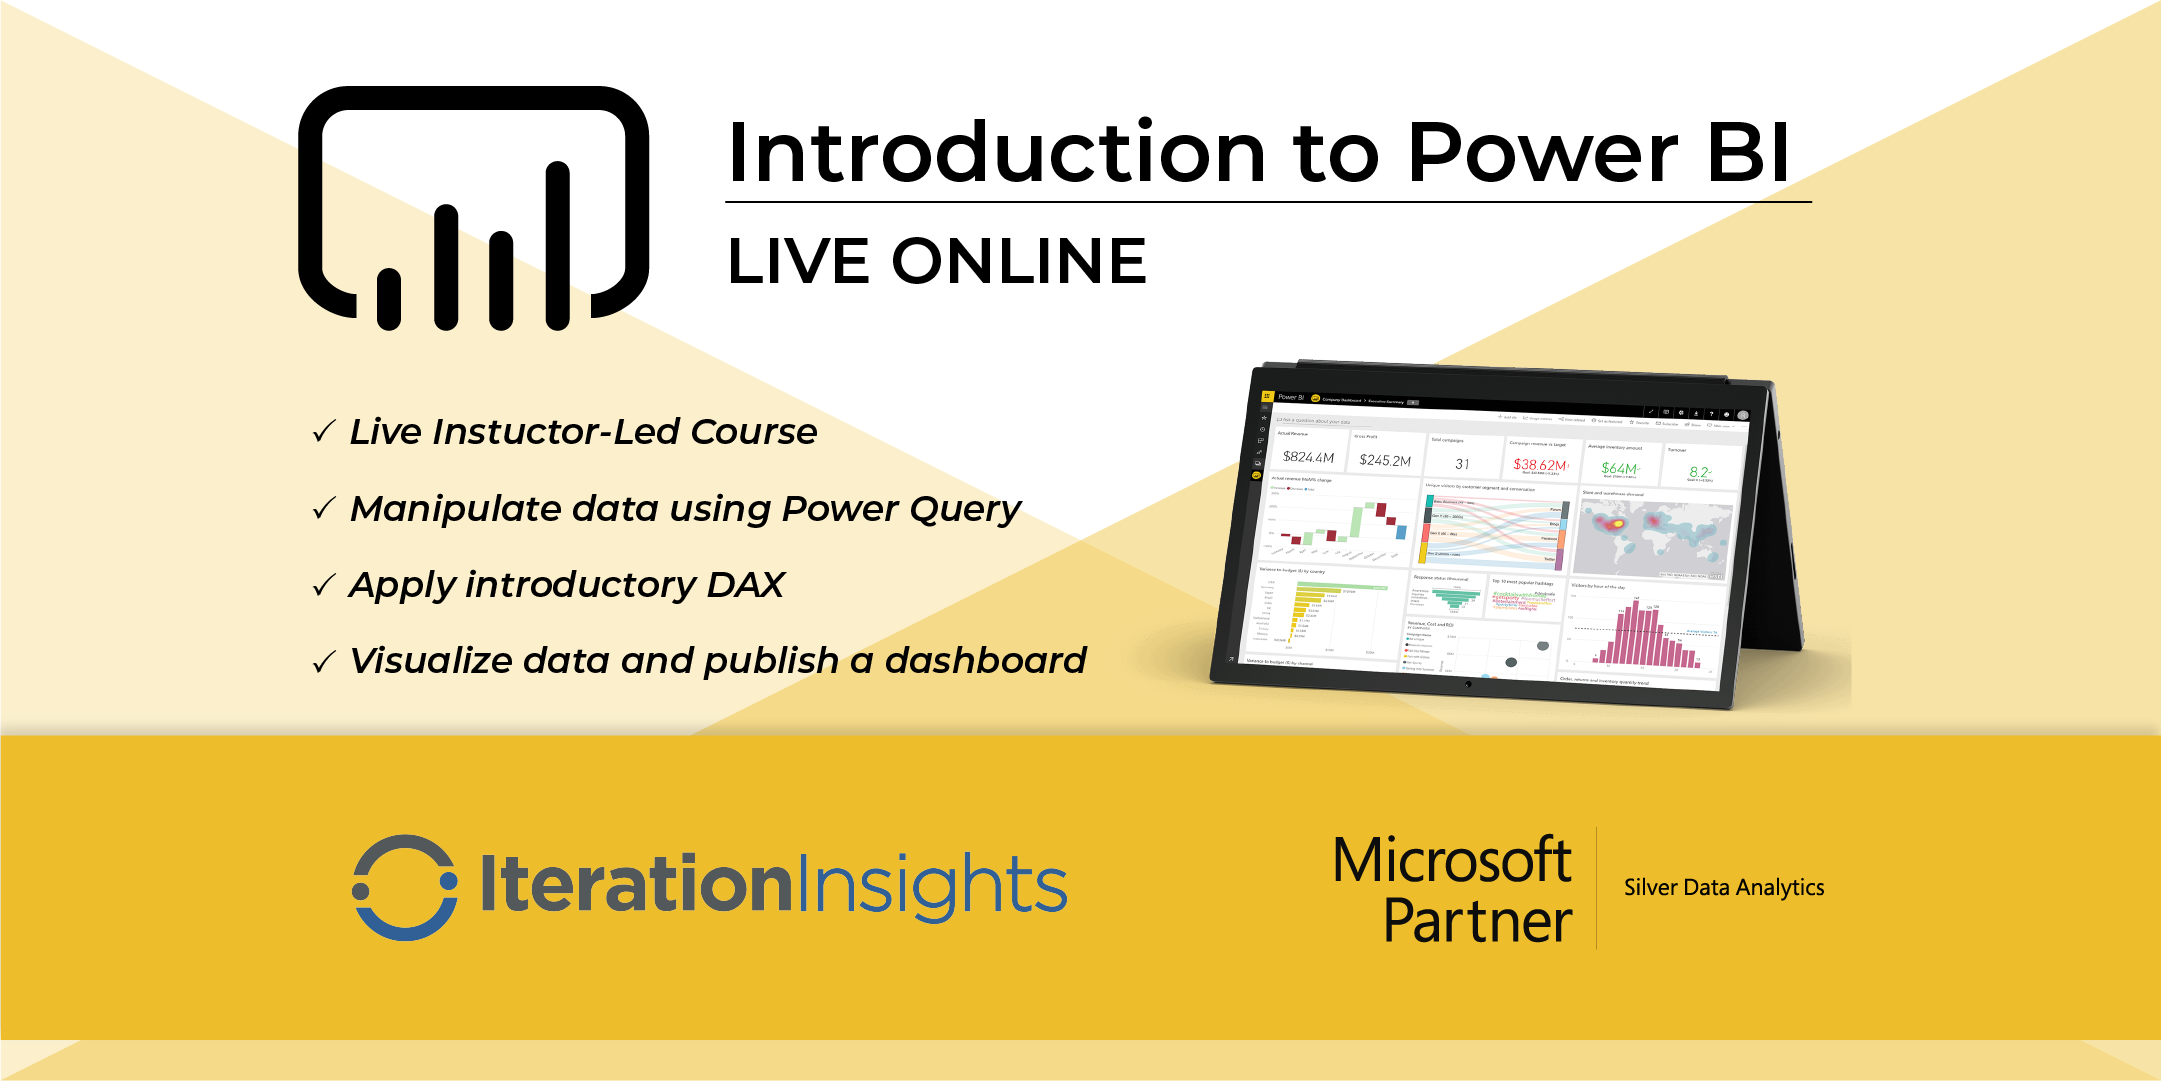 HANDS DOWN THE BEST Introduction to Power BI and DAX - Calgary Virtual 2 Day